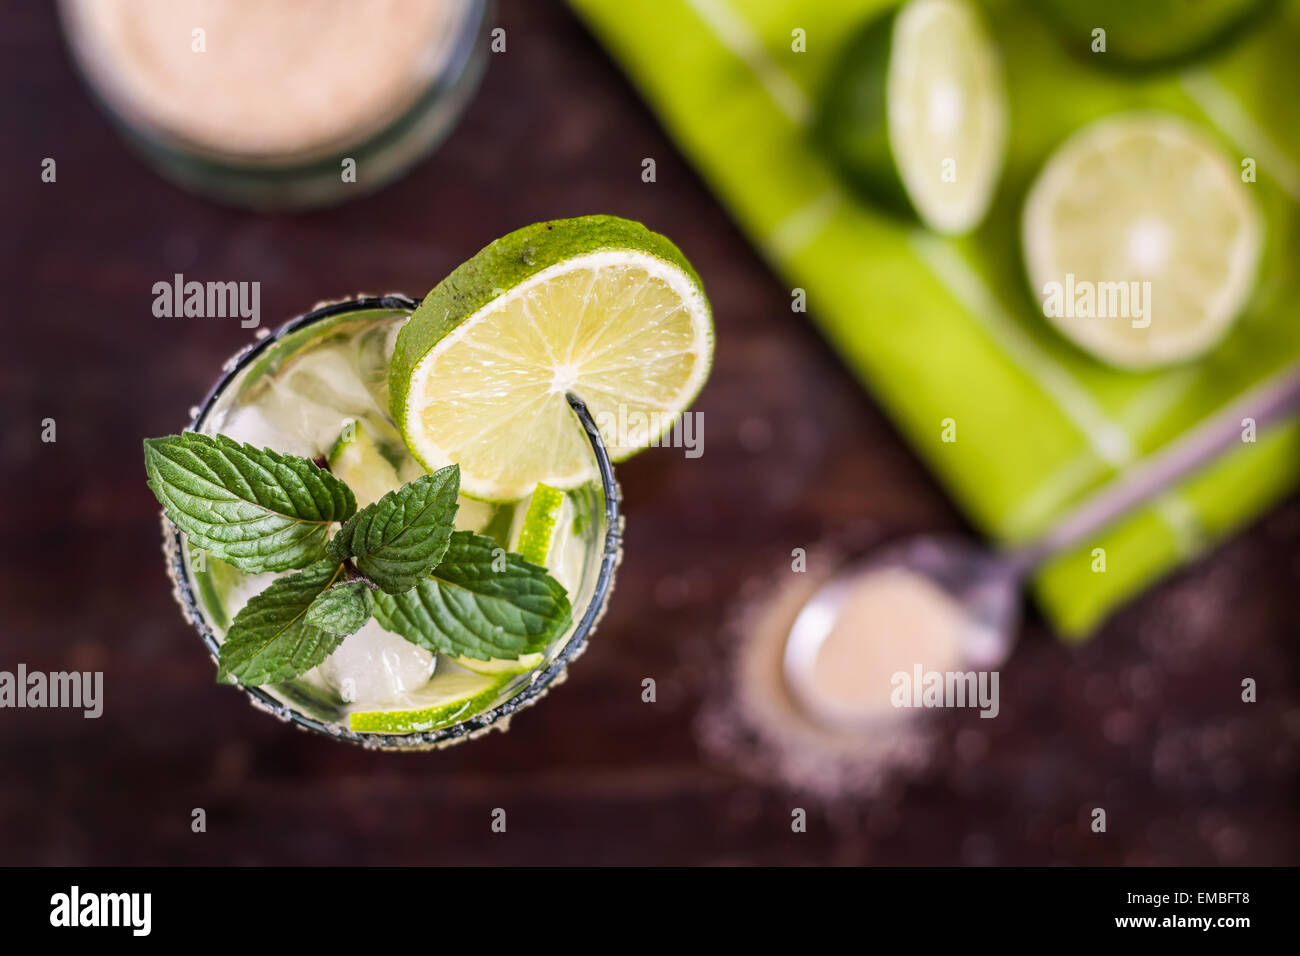 Mojito Lime Alcoholic Drink Cocktail on Wooden Table Overhead Stock Photo